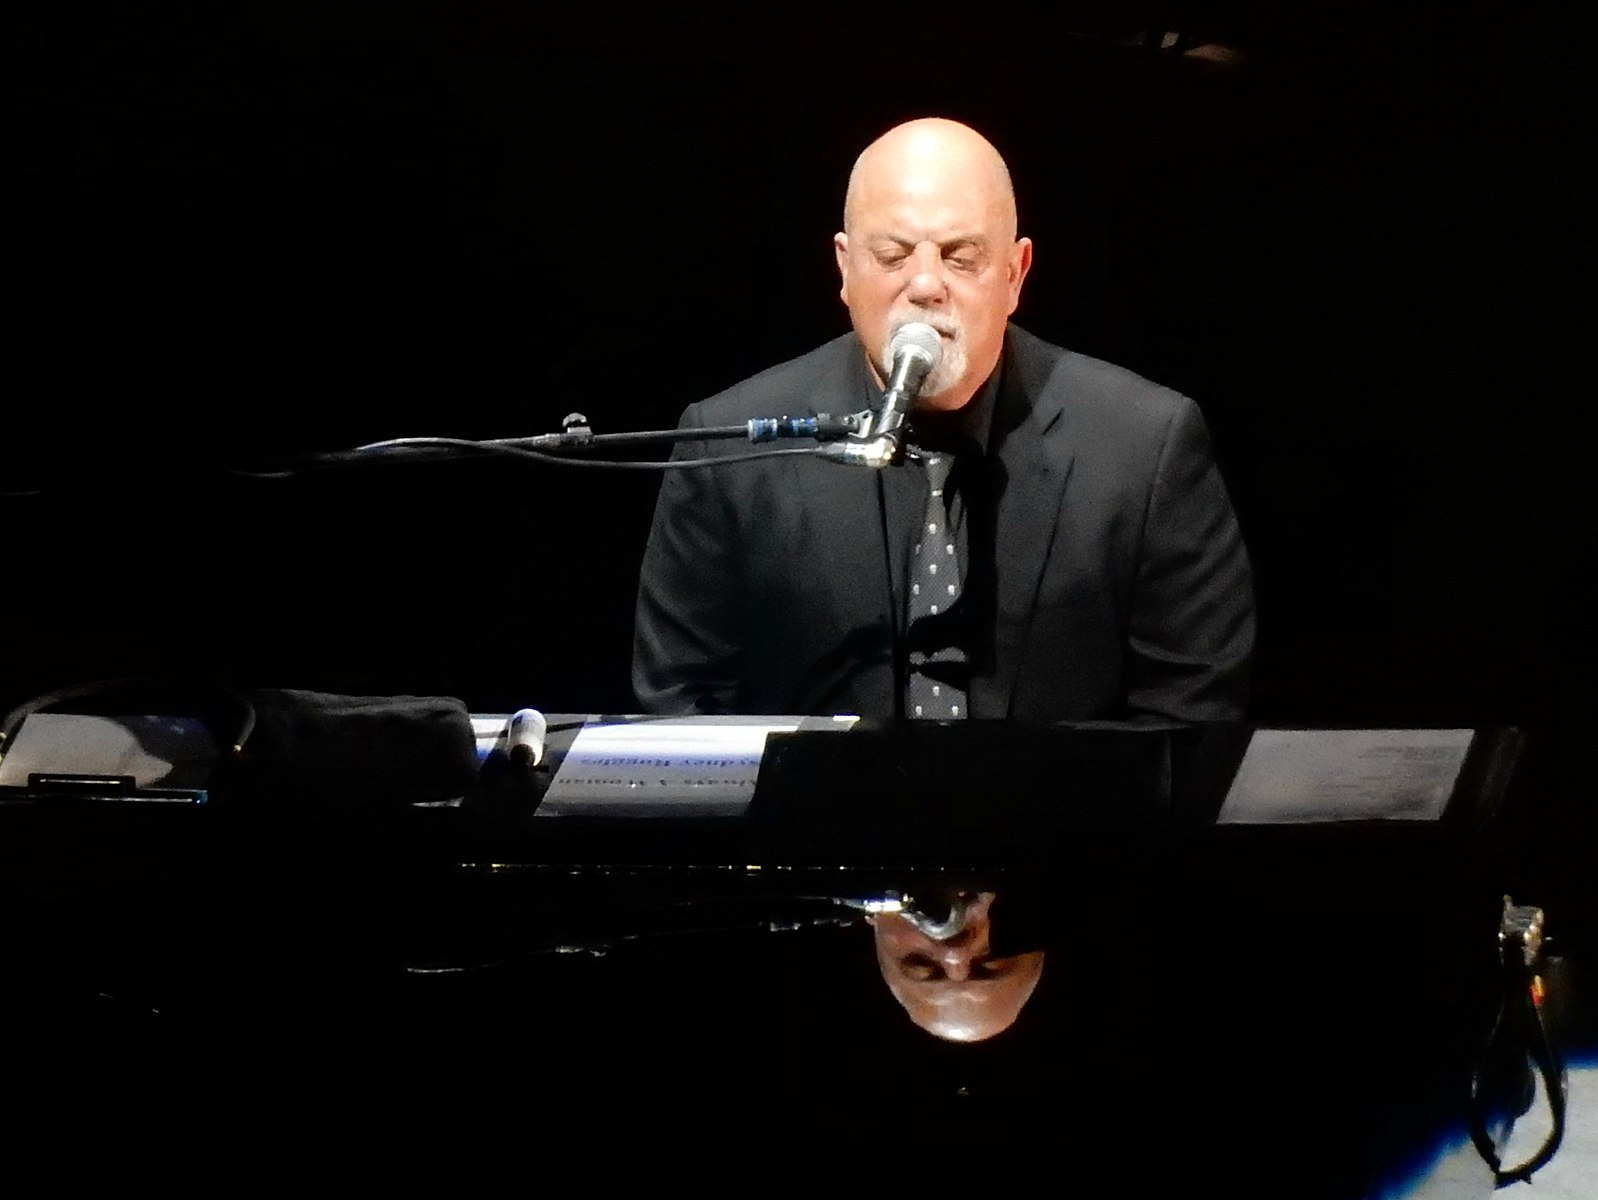 Billy Joel playing piano in concert in Madison Square Garden in 2016.